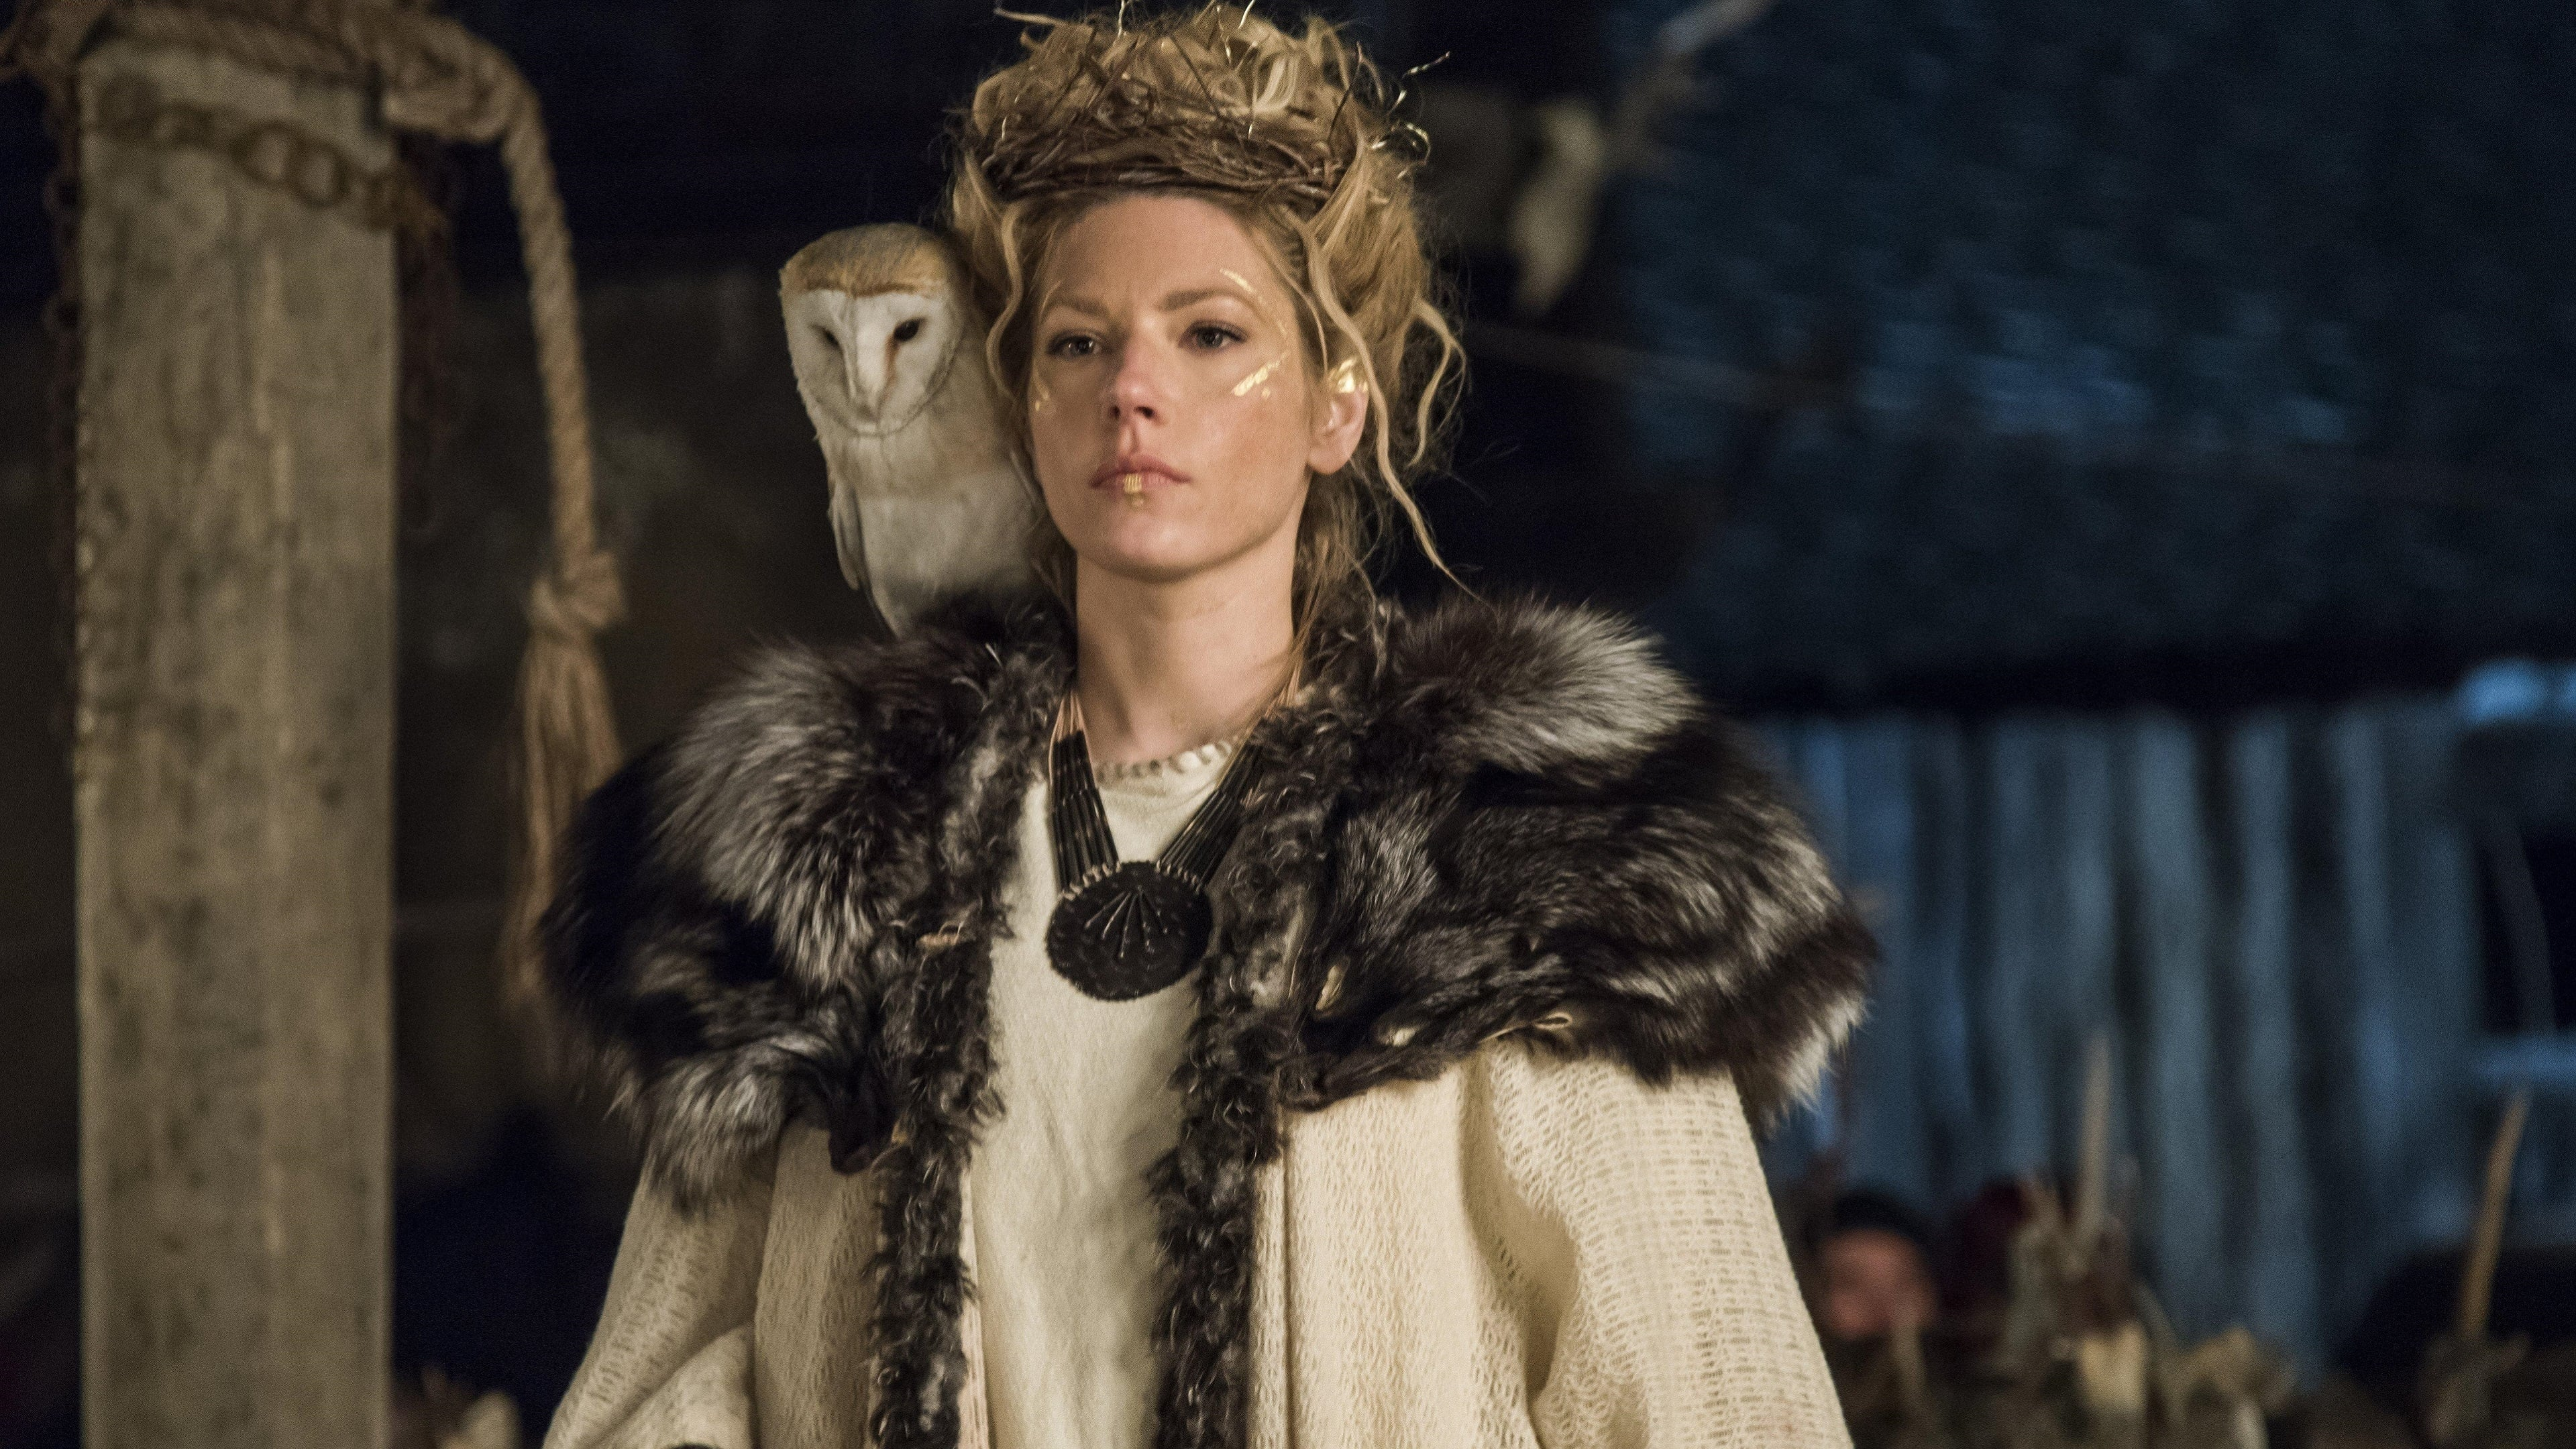 Vikings - Season 4 Episode 18 : Revenge